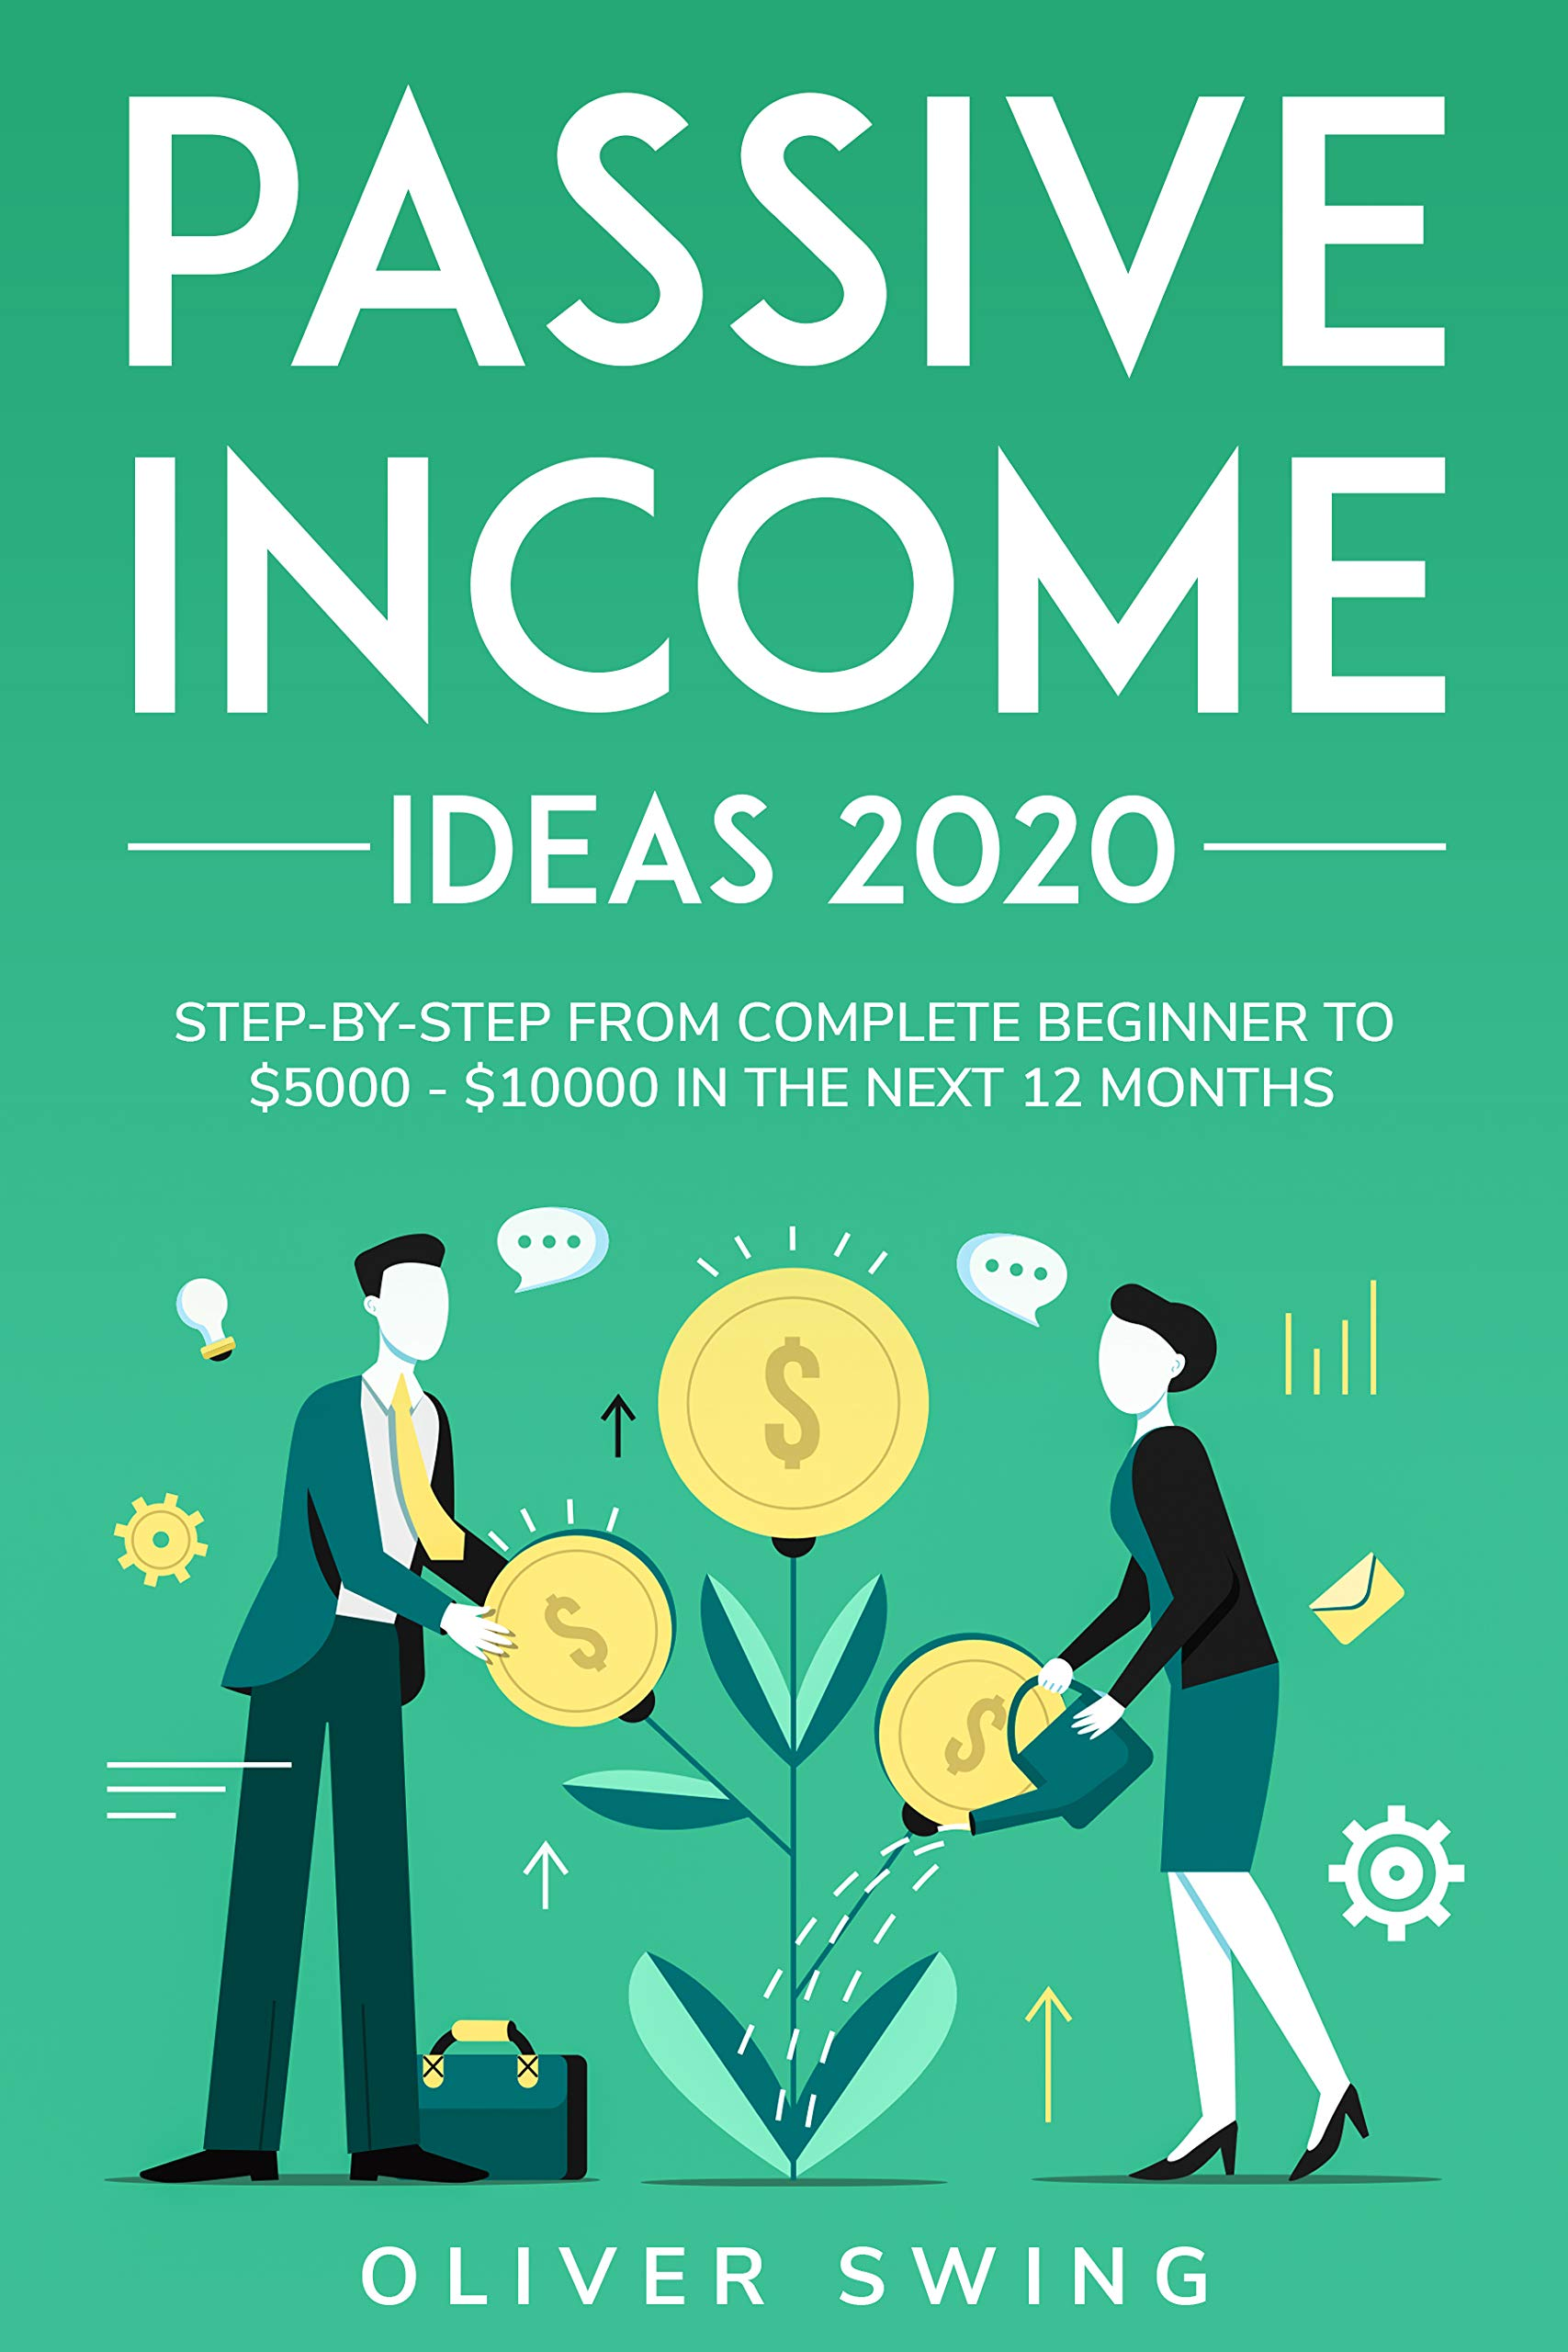 Passive Income Ideas 2020: Step By Step From Complete Beginner To $5000 - $10000 In The Next 12 Months